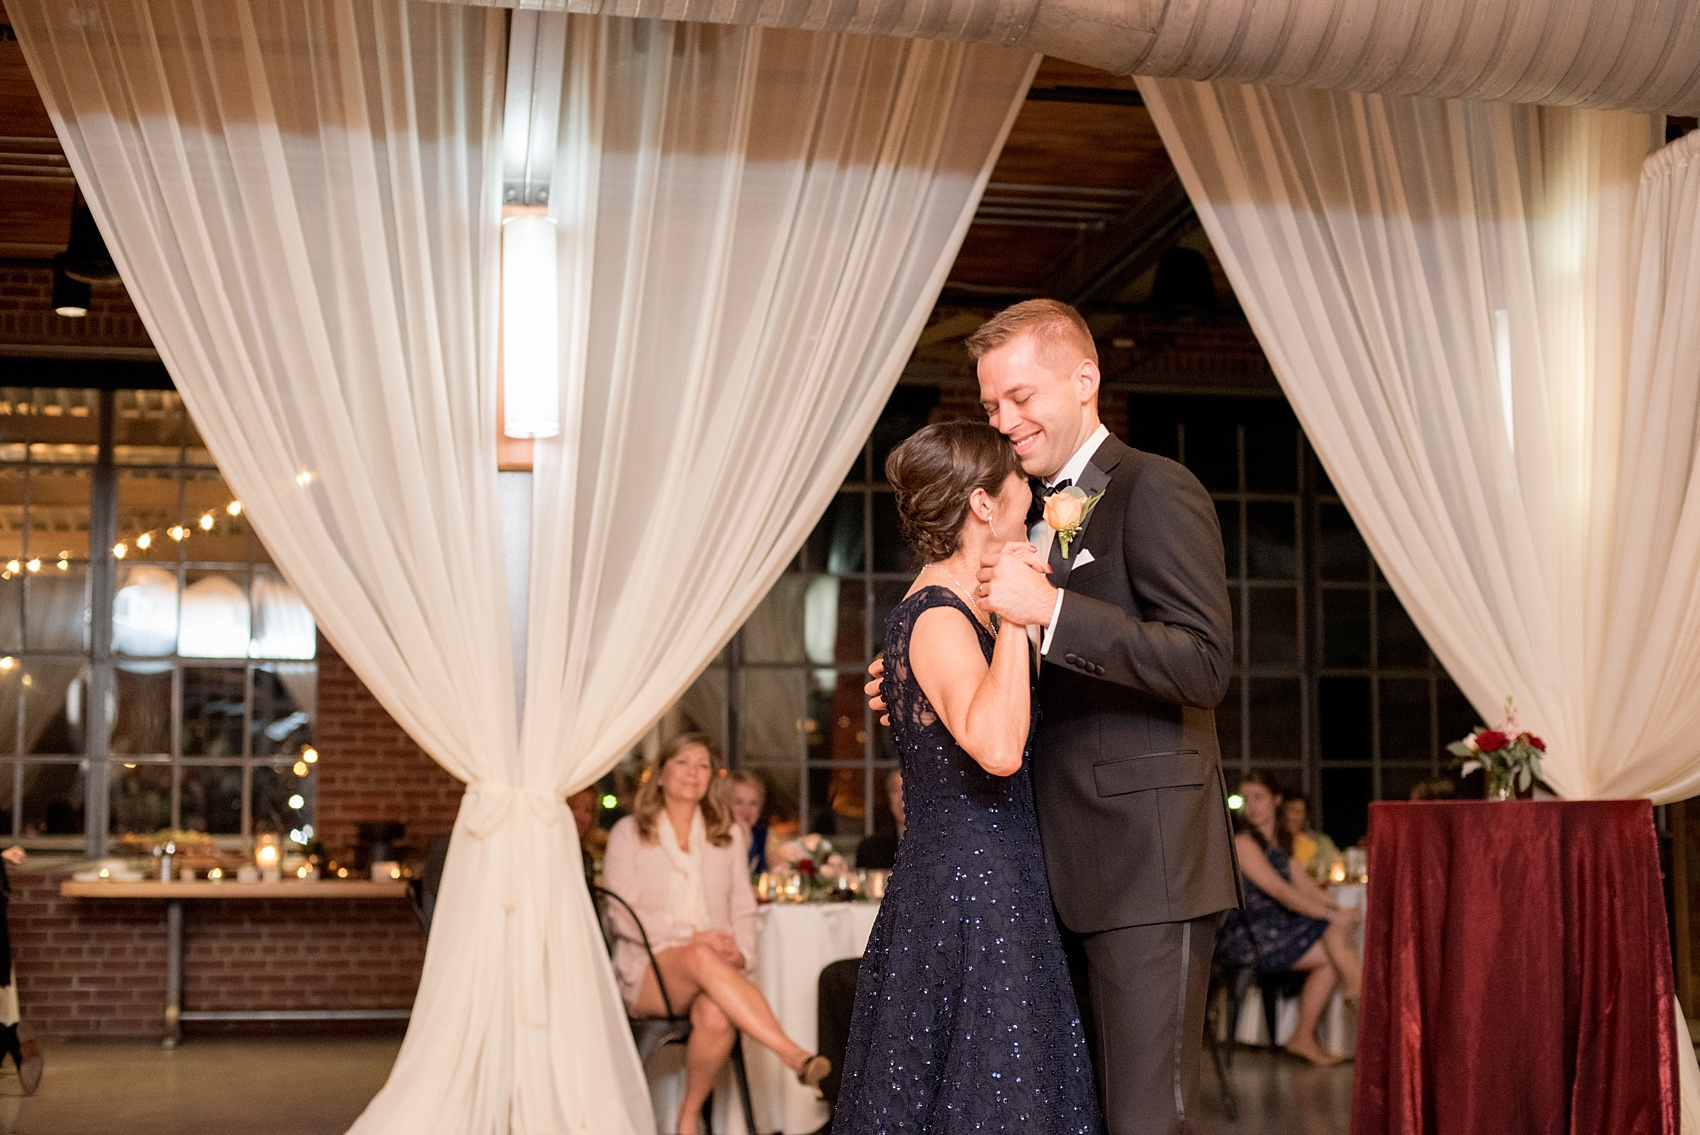 Mikkel Paige Photography photo of a wedding at The Rickhouse, NC. A picture of the groom dancing with his mother.